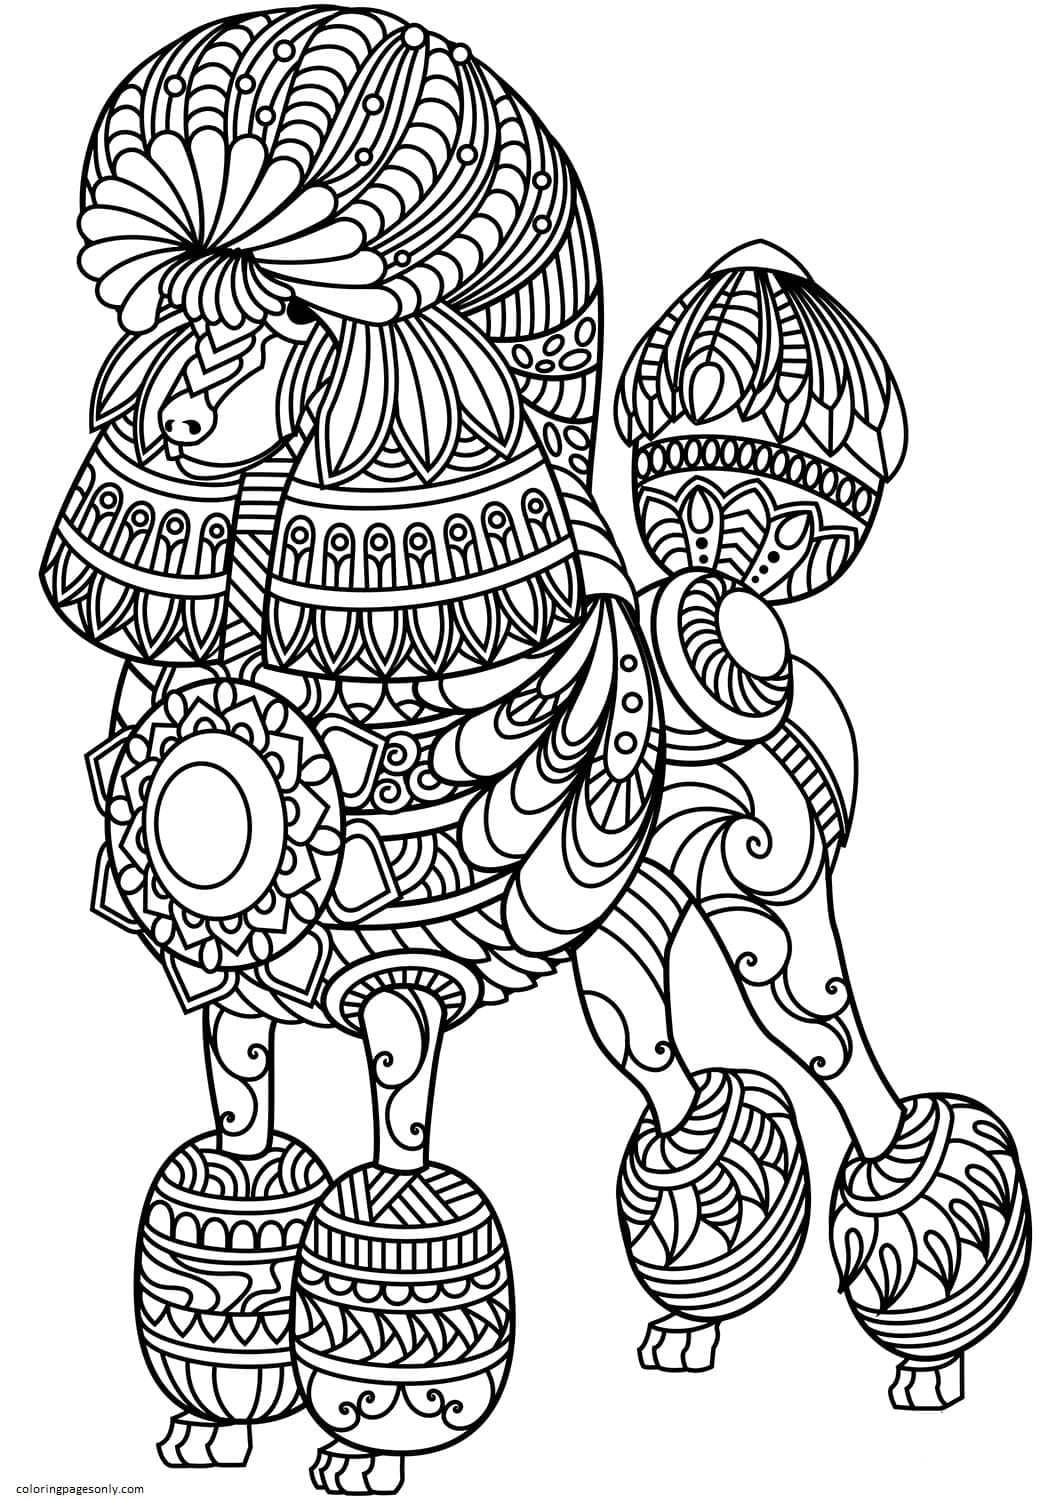 Poodle Zentangle Coloring Page